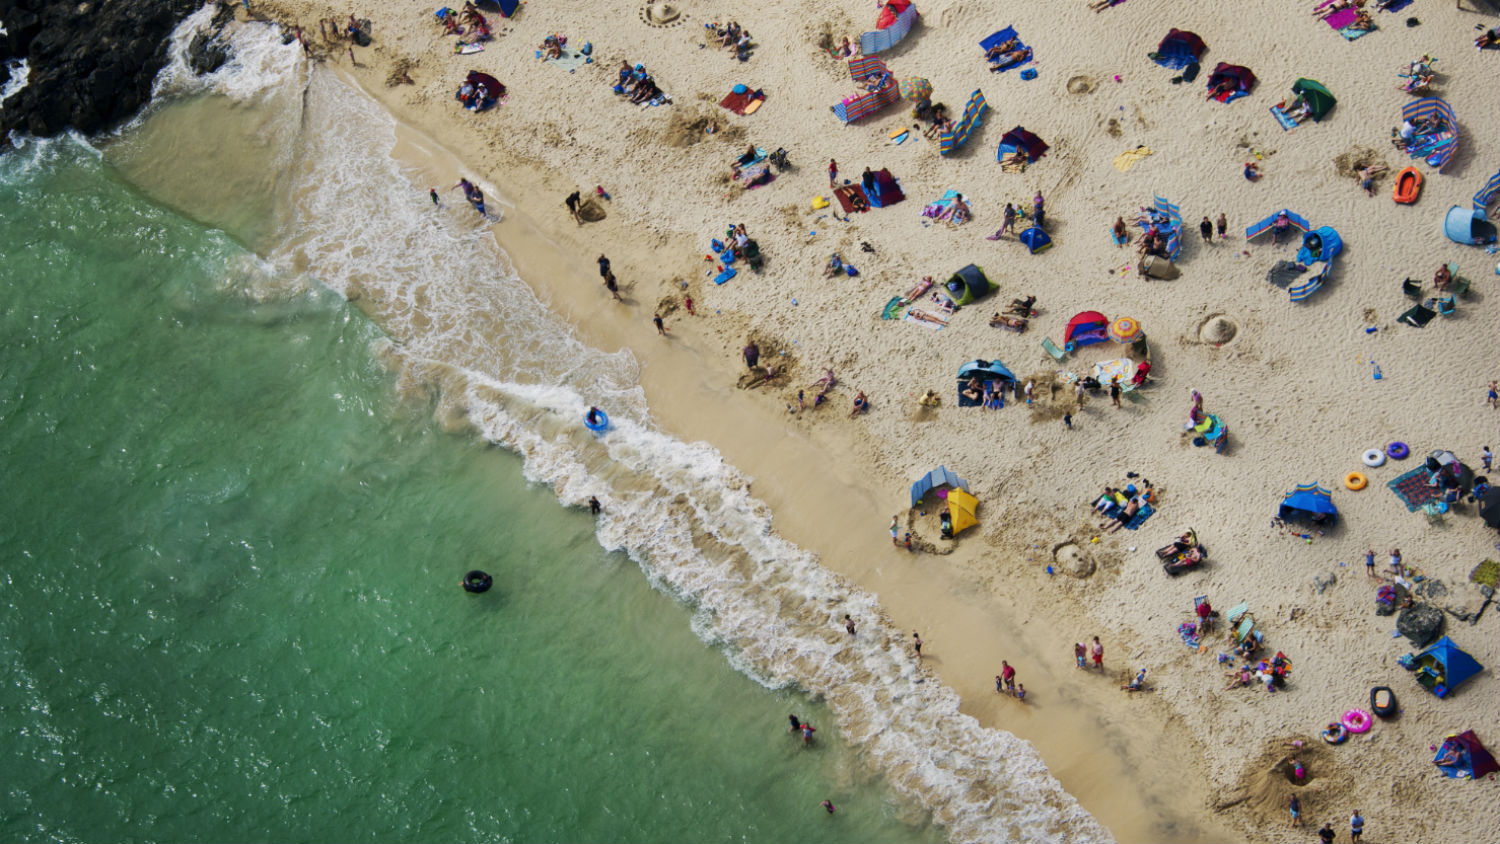 Aerial view of a busy beach